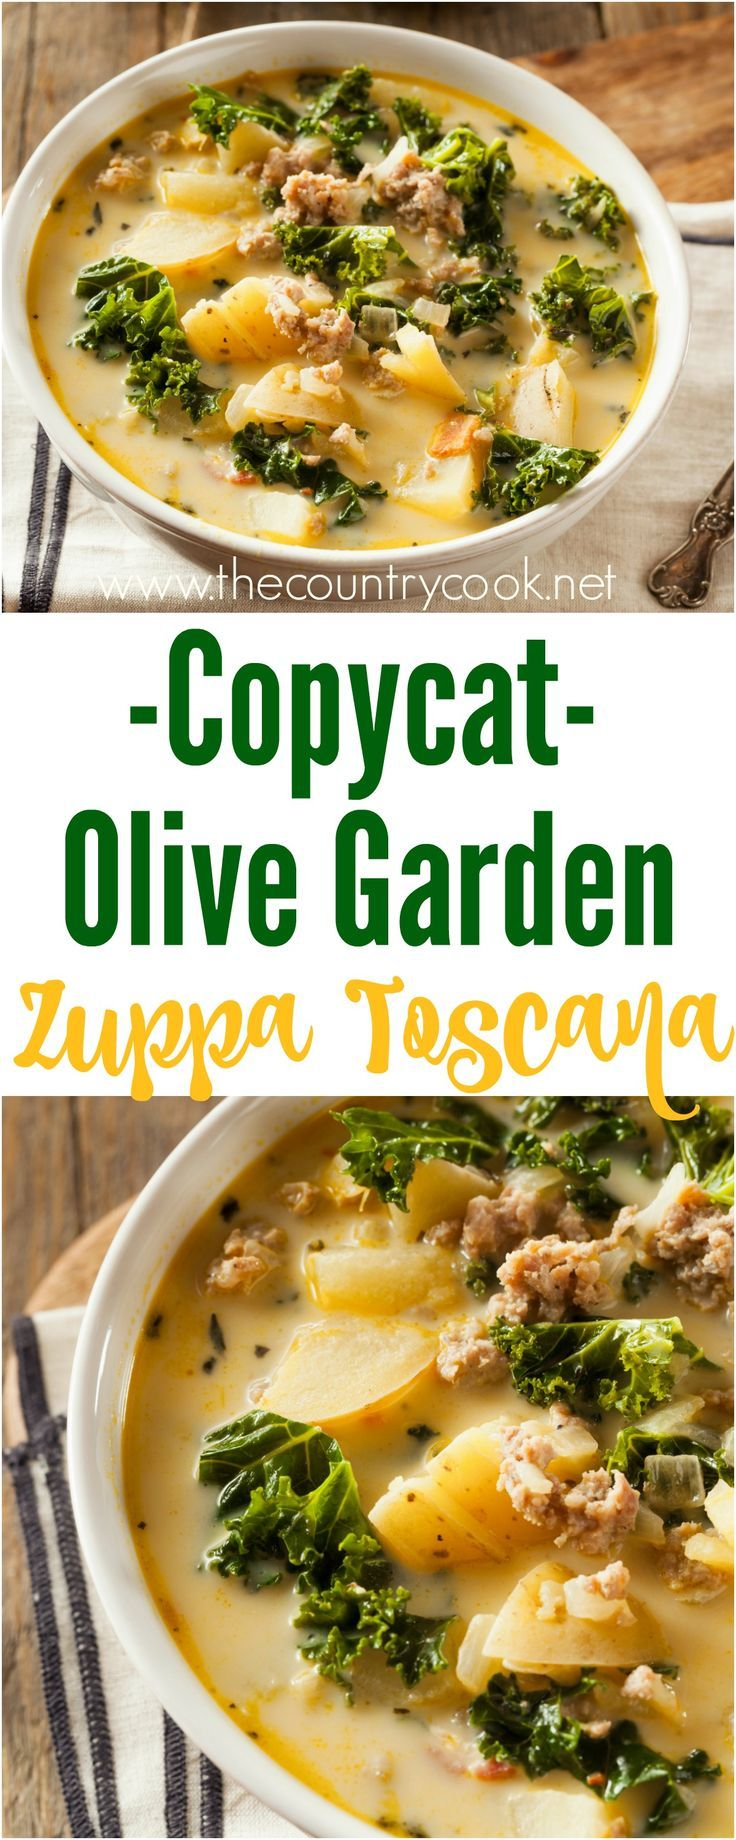 Copycat Olive Garden Zuppa Toscana recipe from The Country Cook. I think it's even better than the one you get at Olive Garden - SO good!